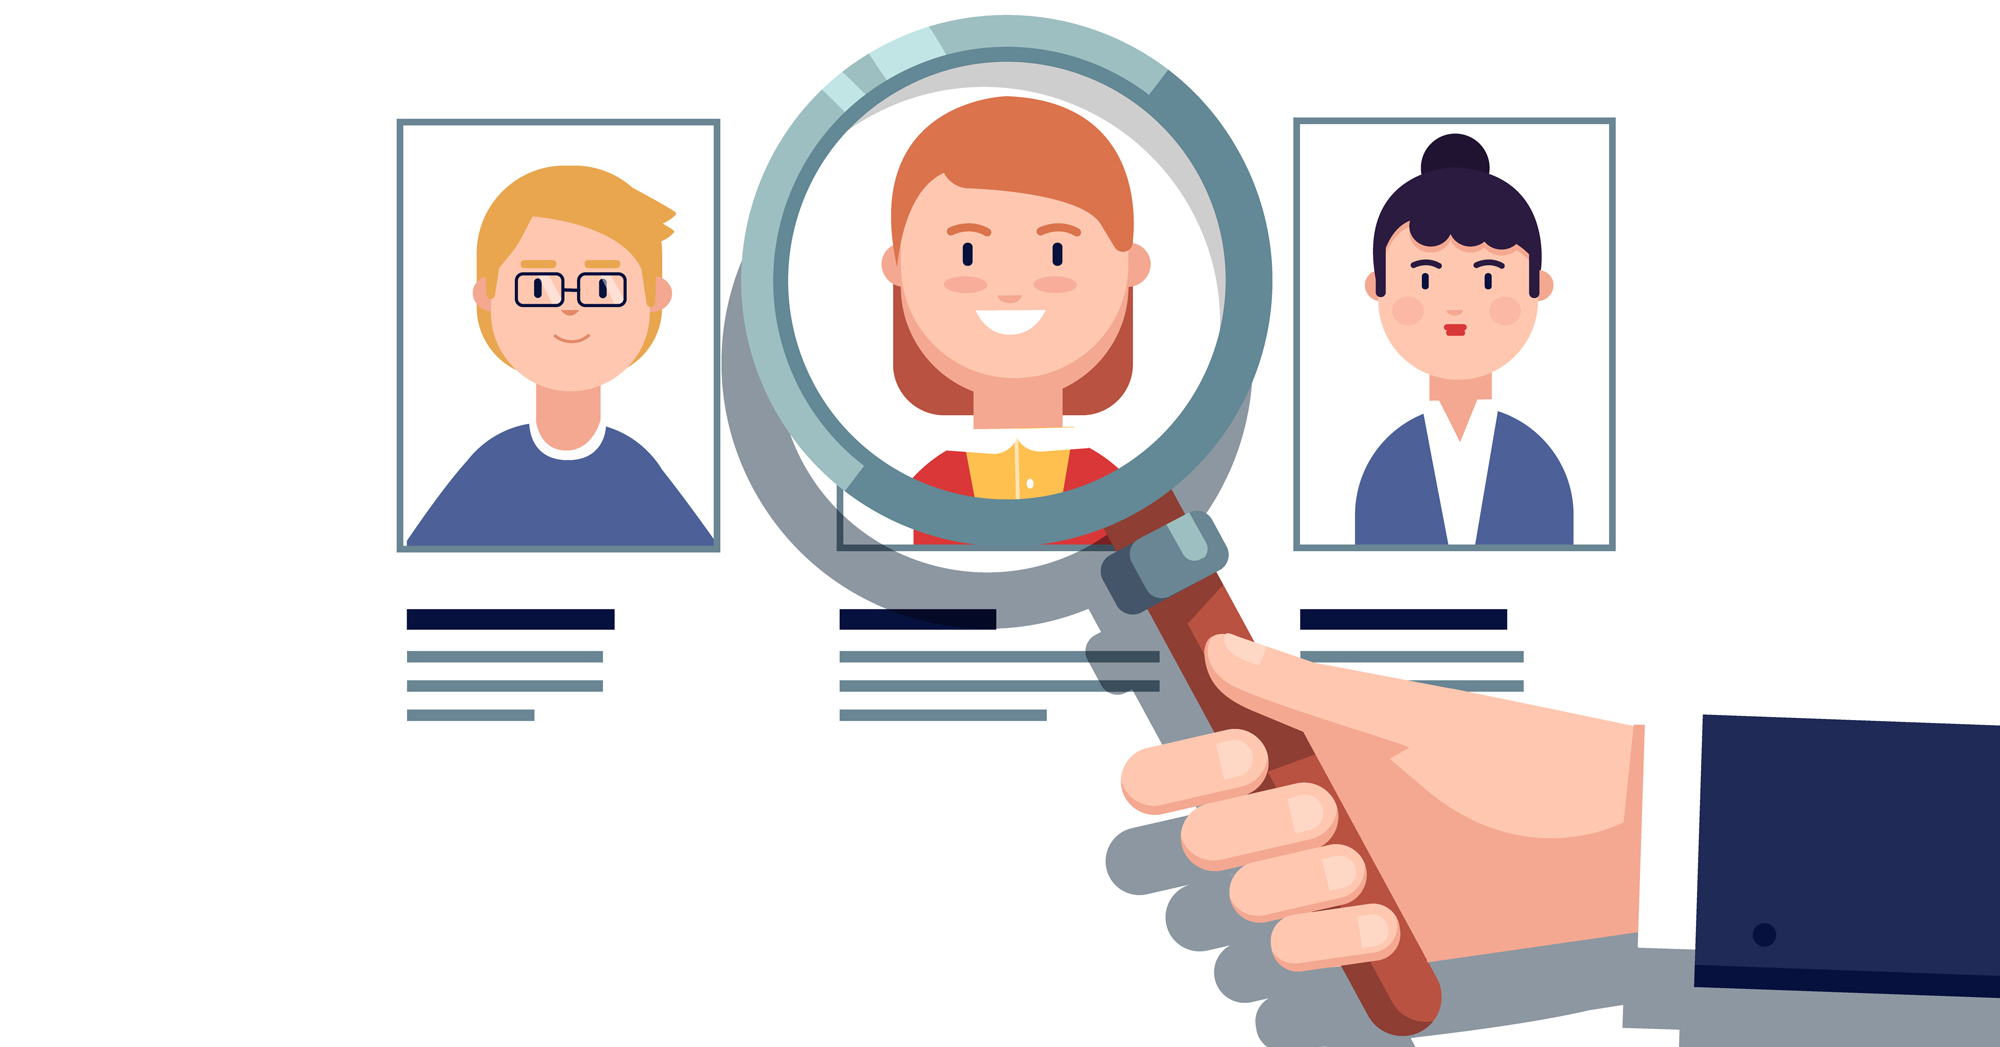 onsite engagement personalization